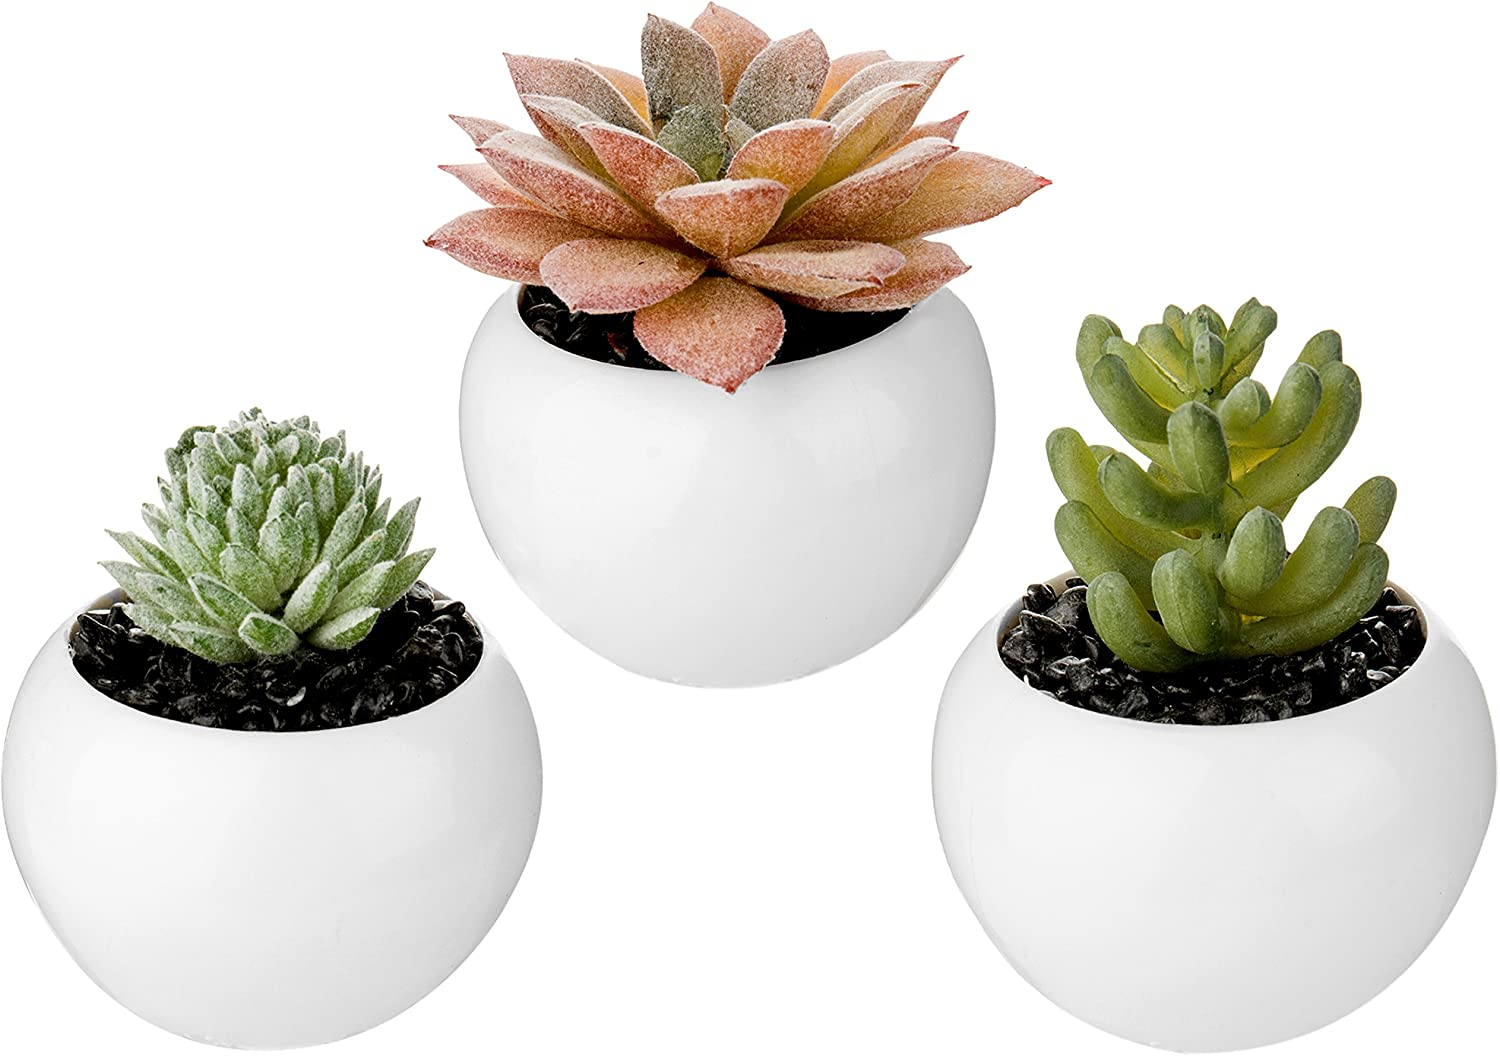 Mygift Set Of 3 Mini Artificial Succulent Plants In White Ceramic Pots Assortment 1 Home Kitchen